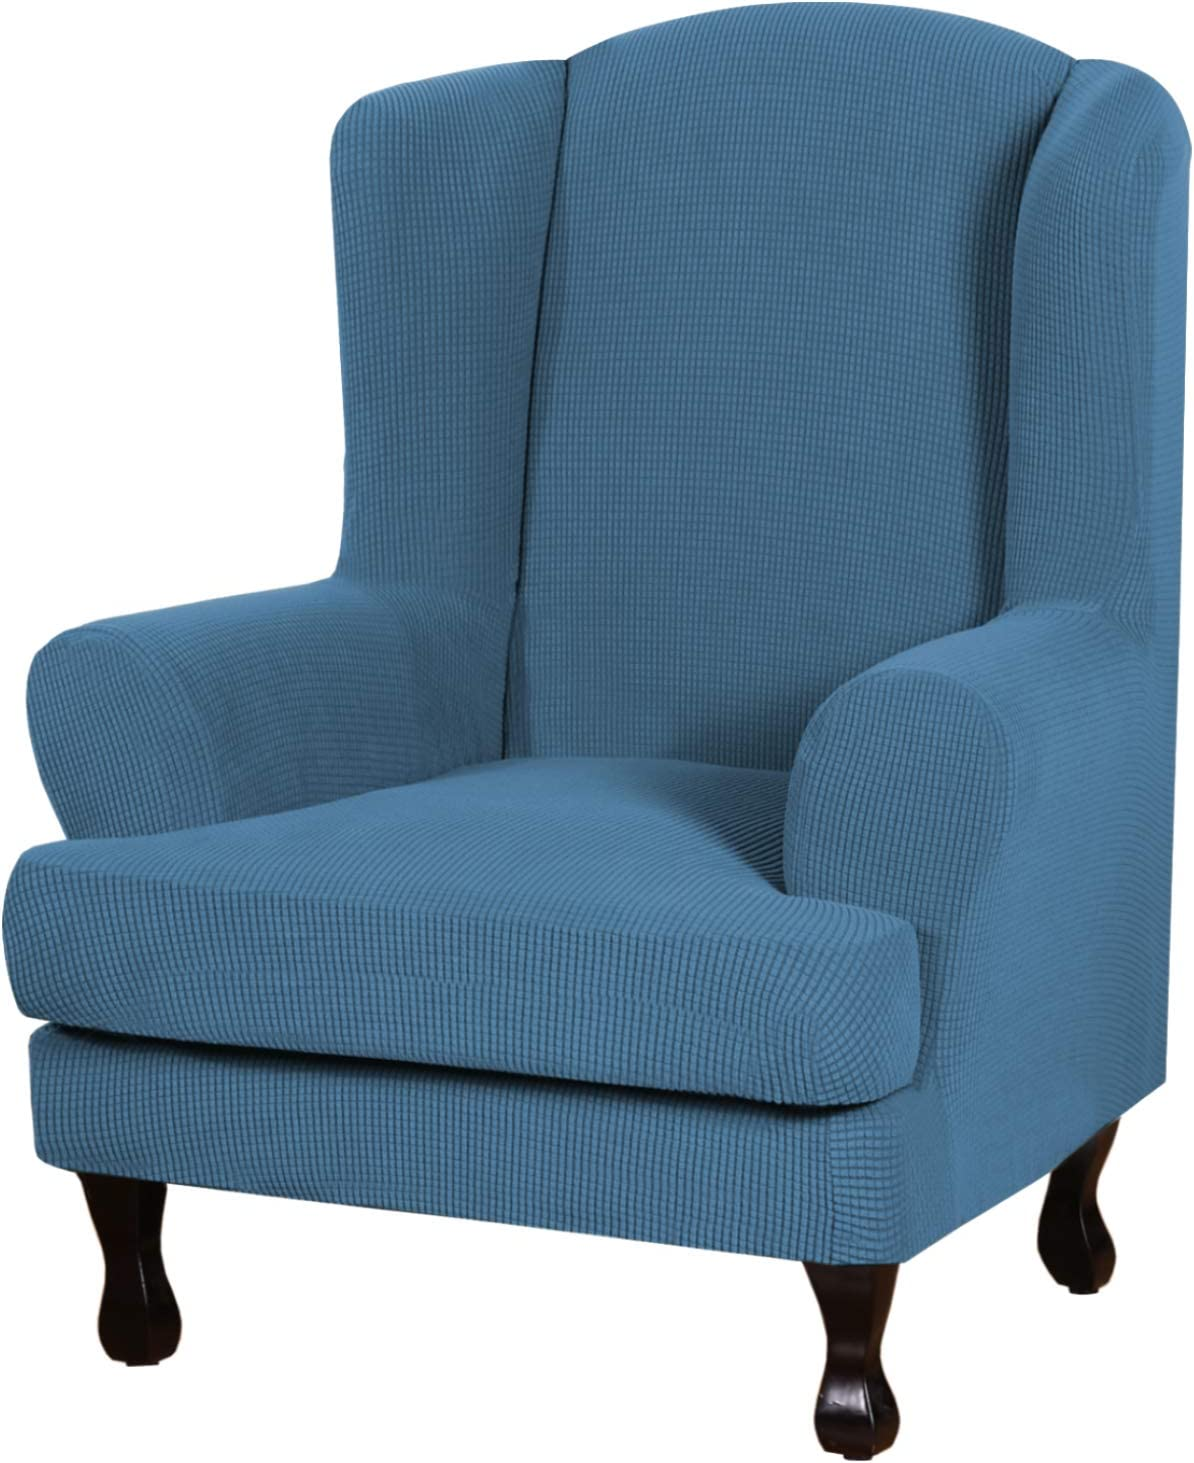 H.VERSAILTEX 2 Piece Stretch Jacquard Wingback Chair Covers Slipcovers Wing Chair Covers (Base Cover Plus Seat Cushion Cover) Furniture Covers for Wingback Chairs, Form Fitted Thick Soft, Dusty Blue